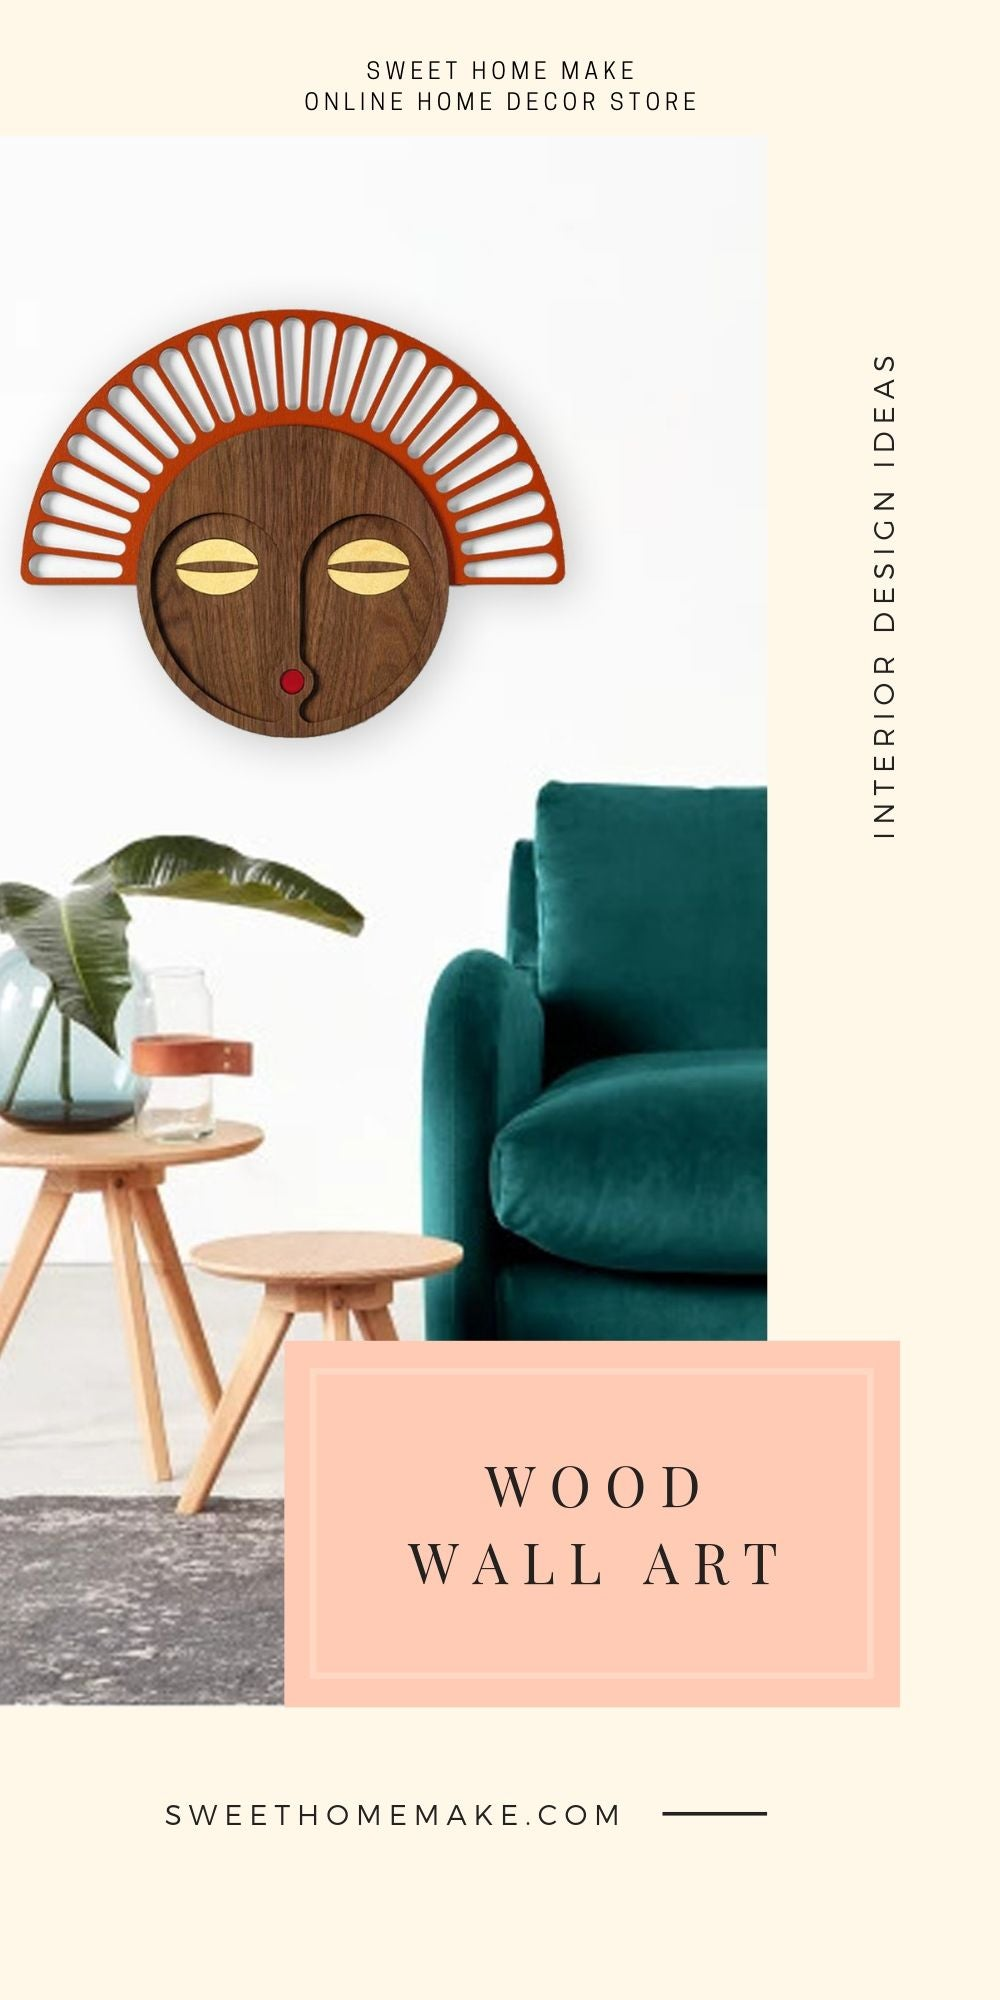 African Wall Mask with Wood Wall Art